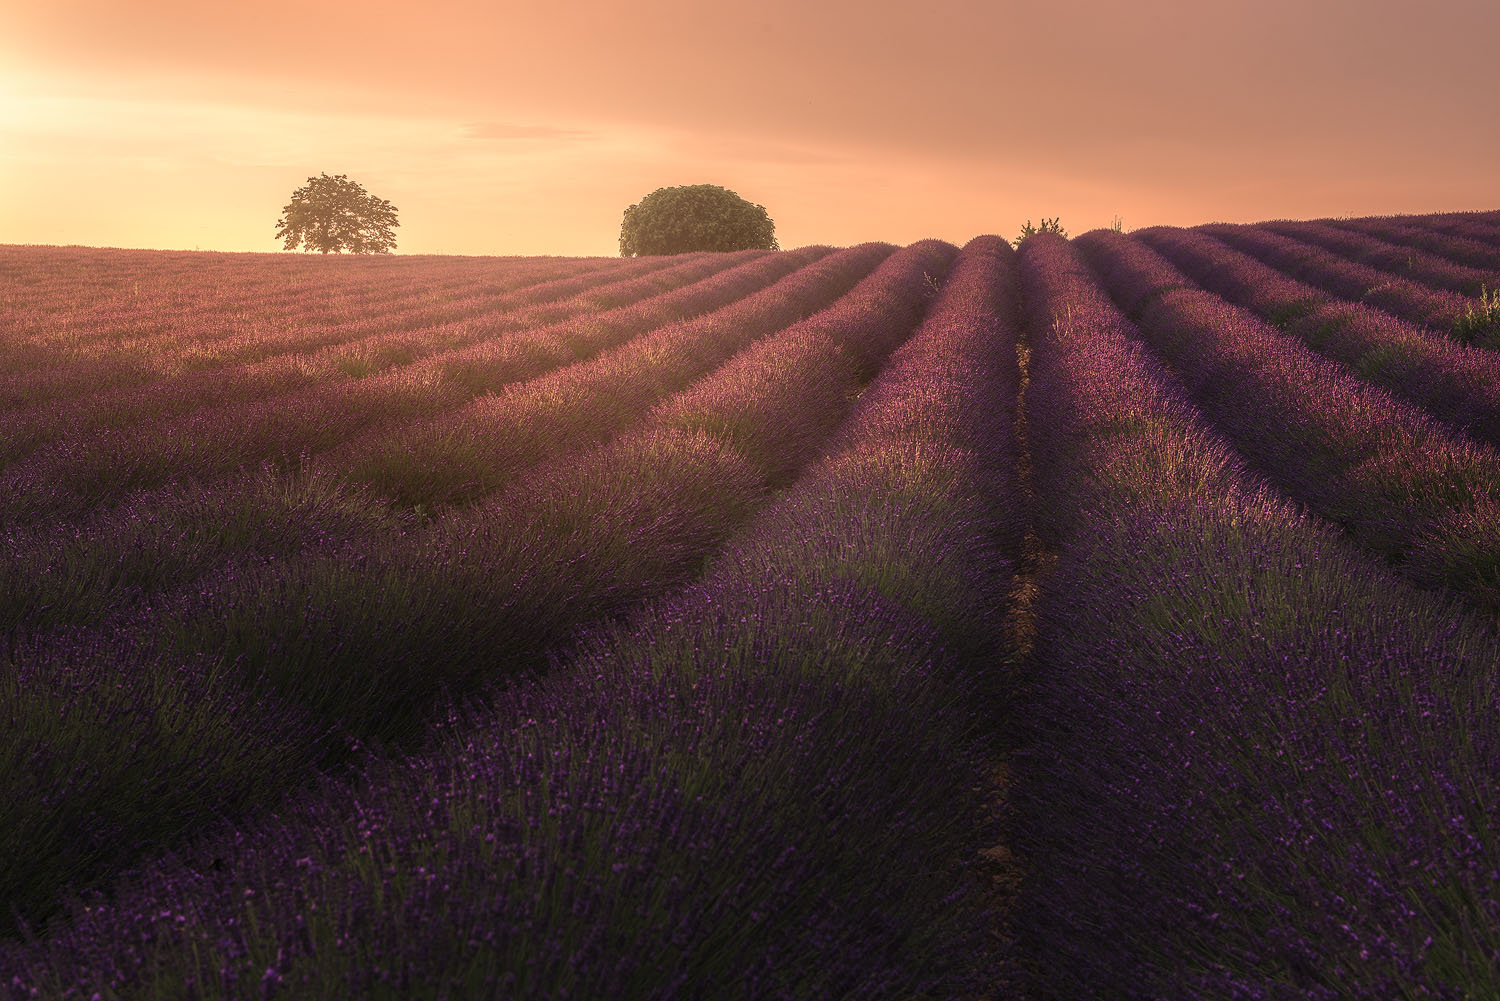 BTS: Composing Milky Way & Golden Hour Shots At The Lavender Fields